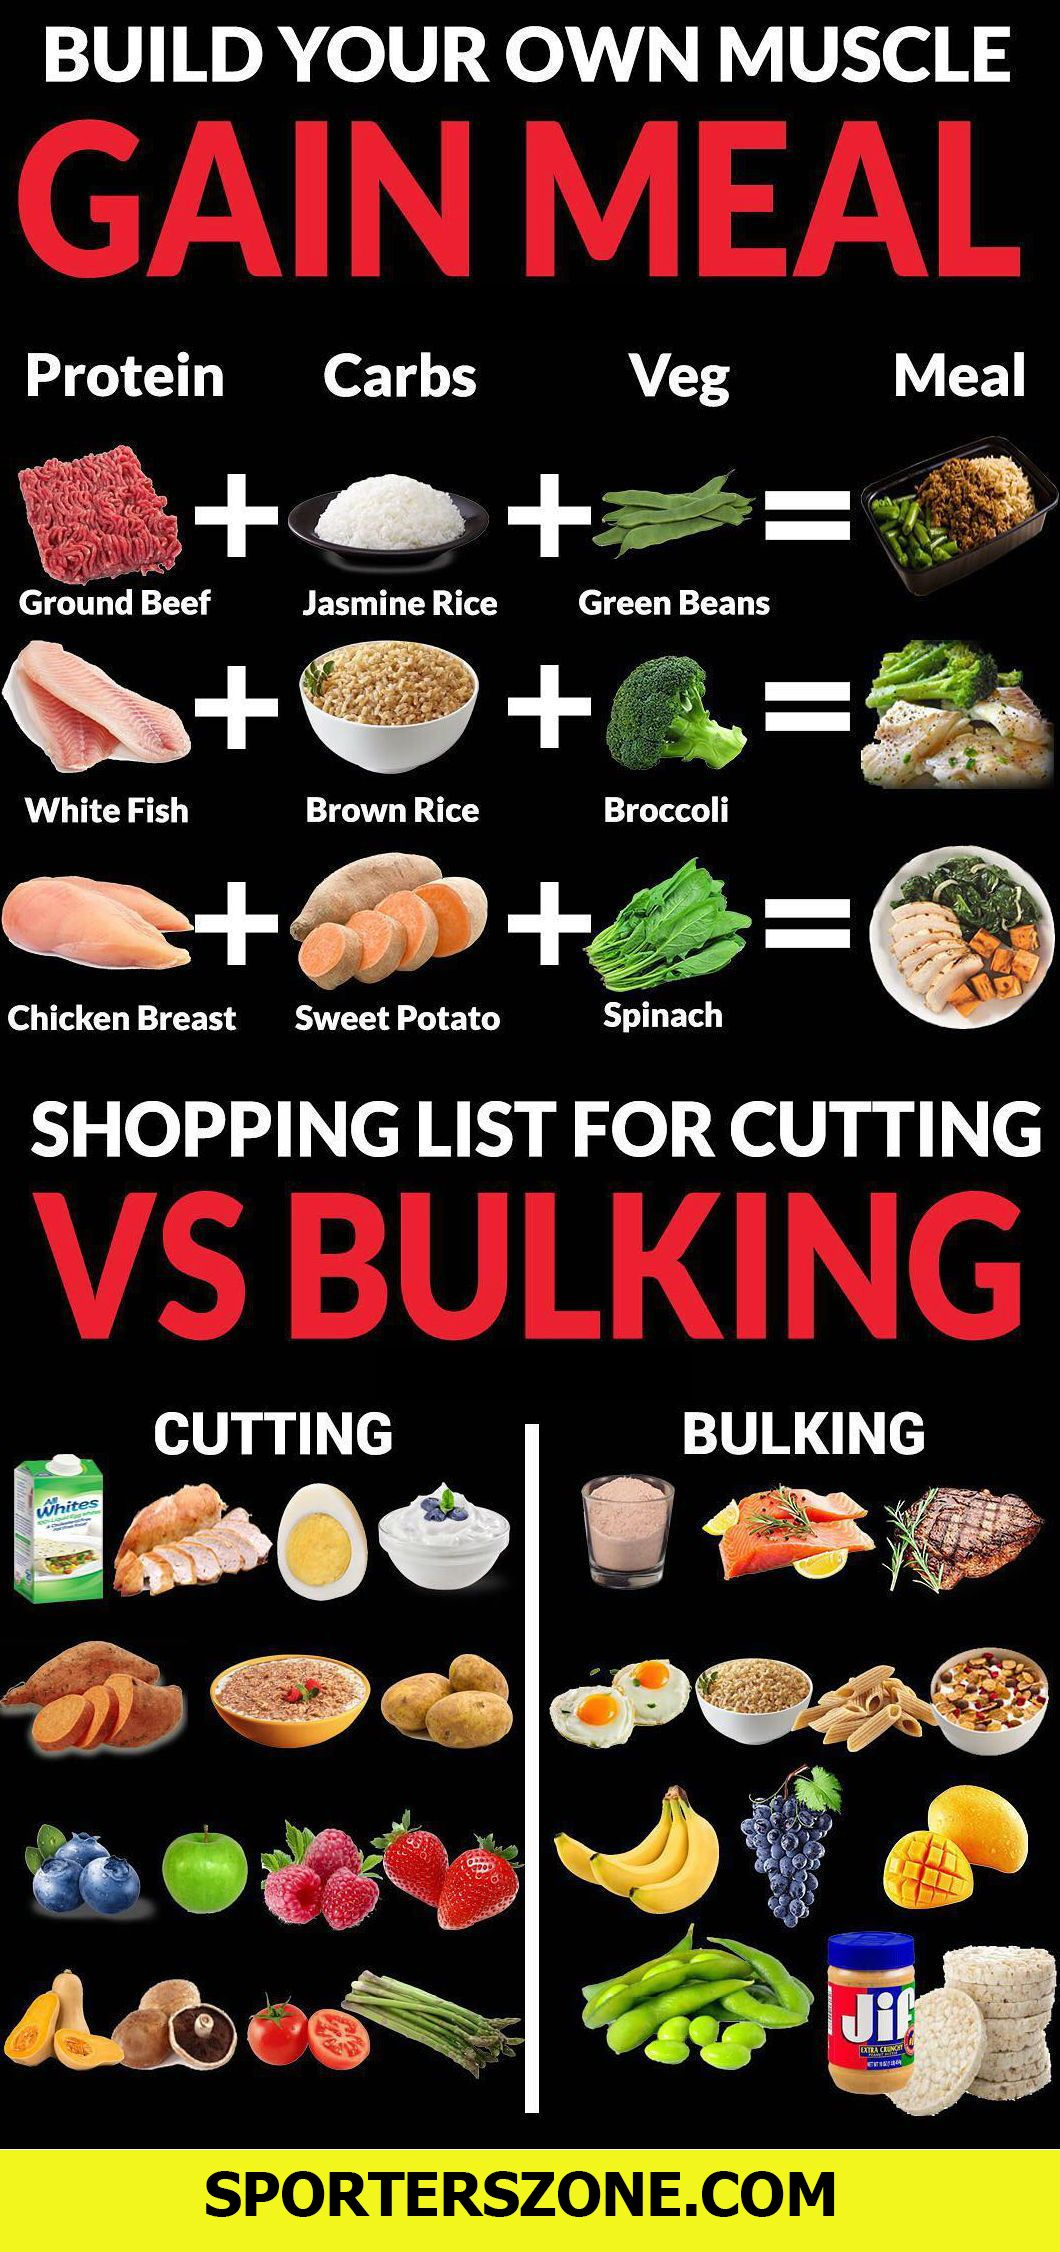 Build Your Own Muscle Gain Meal Bulking Meals Bulking Meal Plan Diet And Nutrition